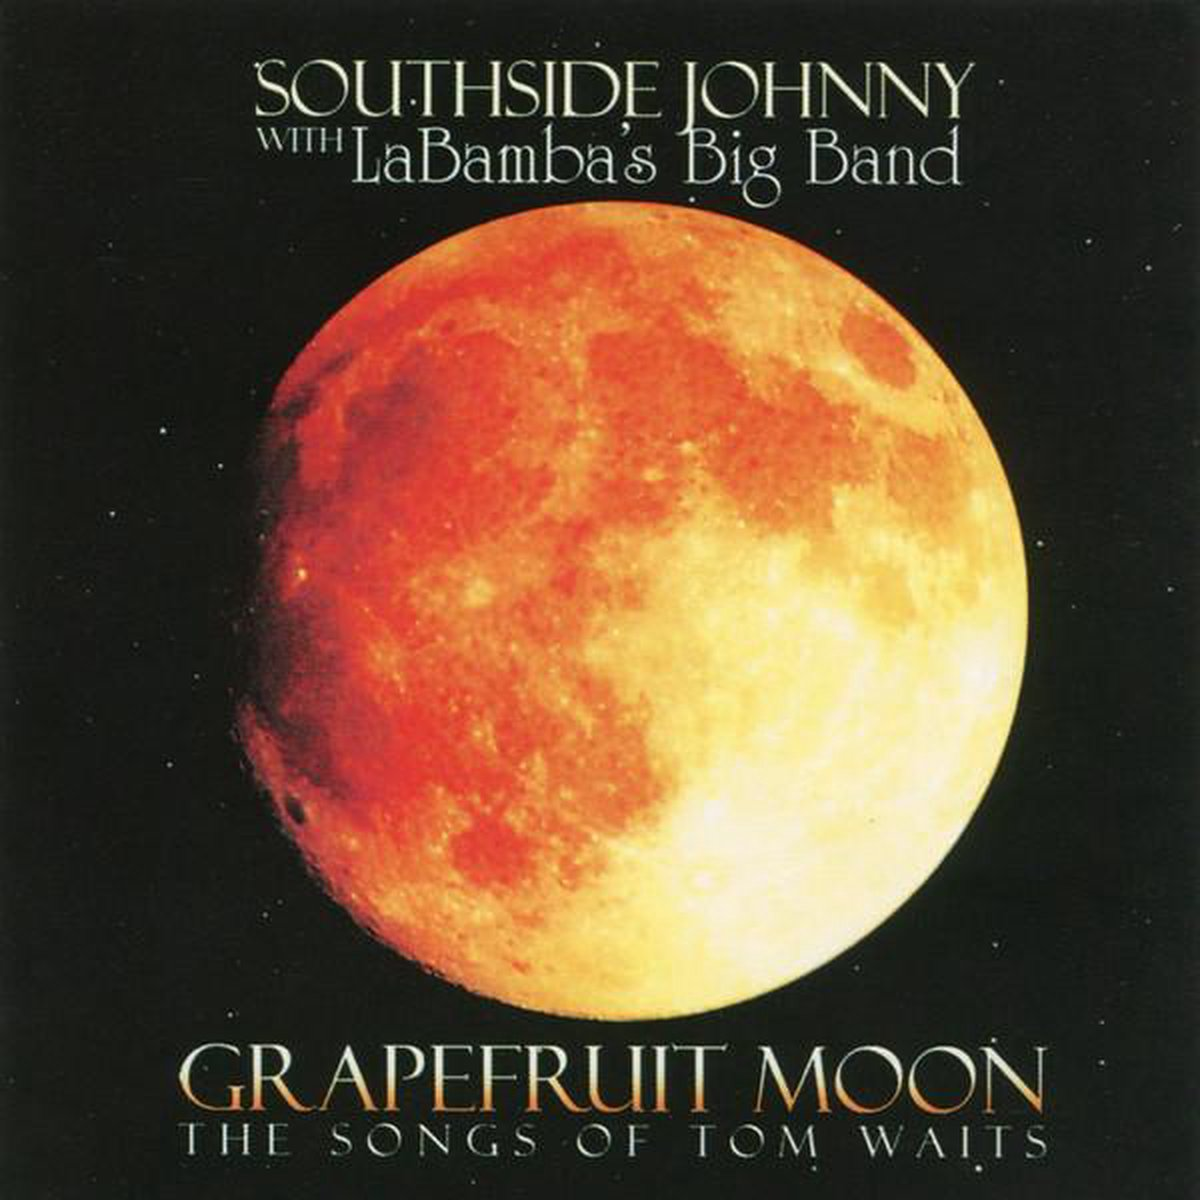 Southside Johnny - Grapefruit Moon – The Songs Of Tom Waits